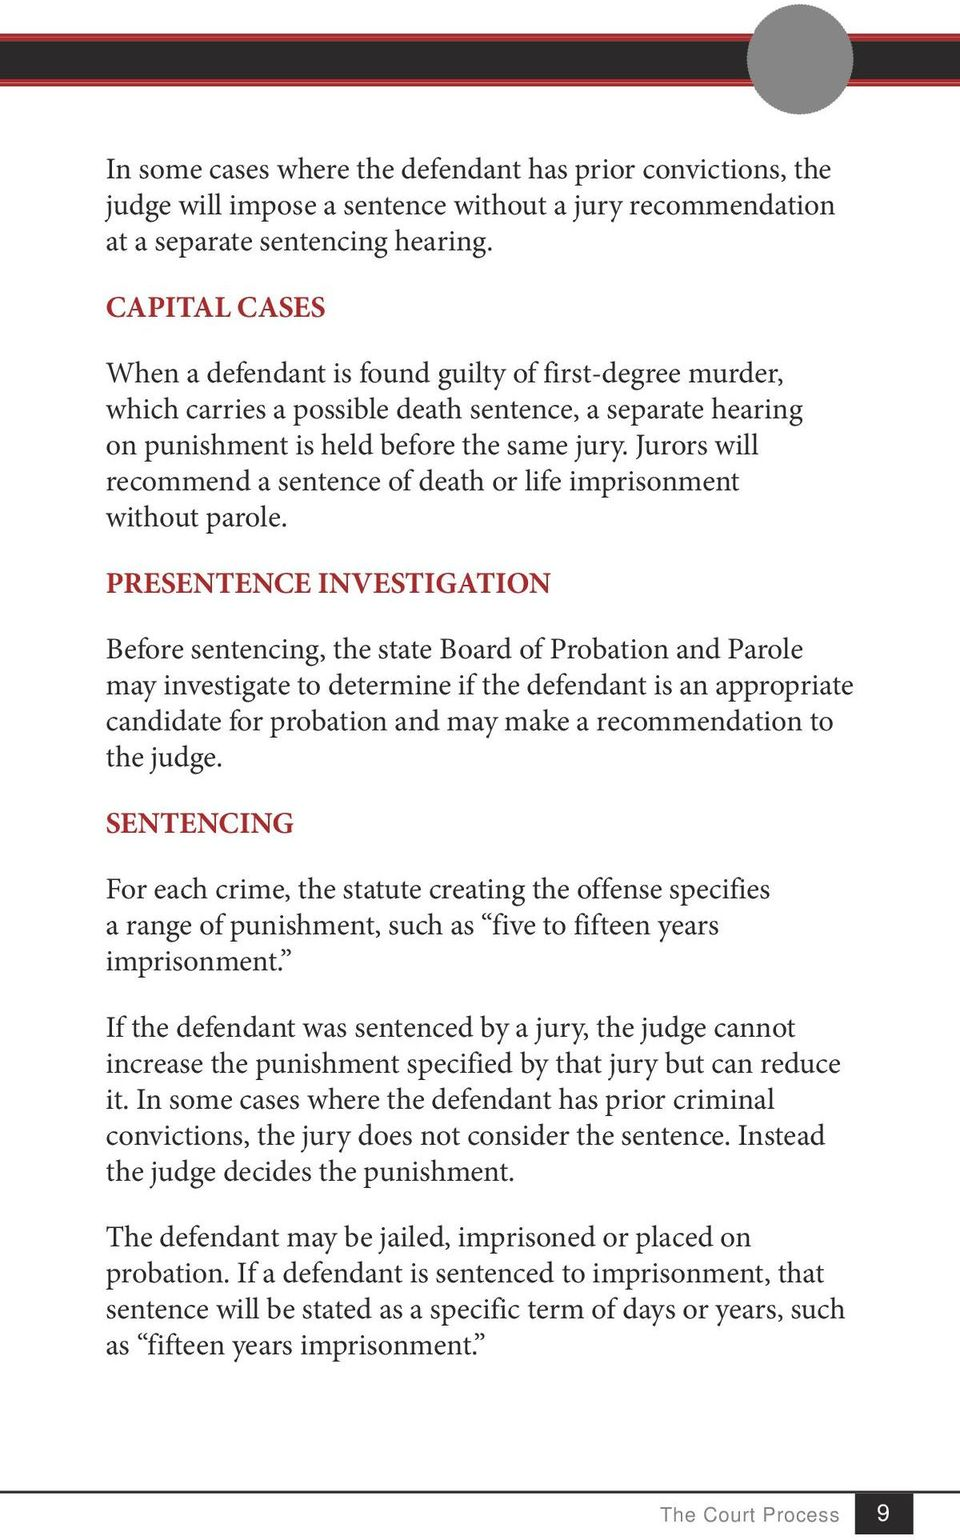 Jurors will recommend a sentence of death or life imprisonment without parole.